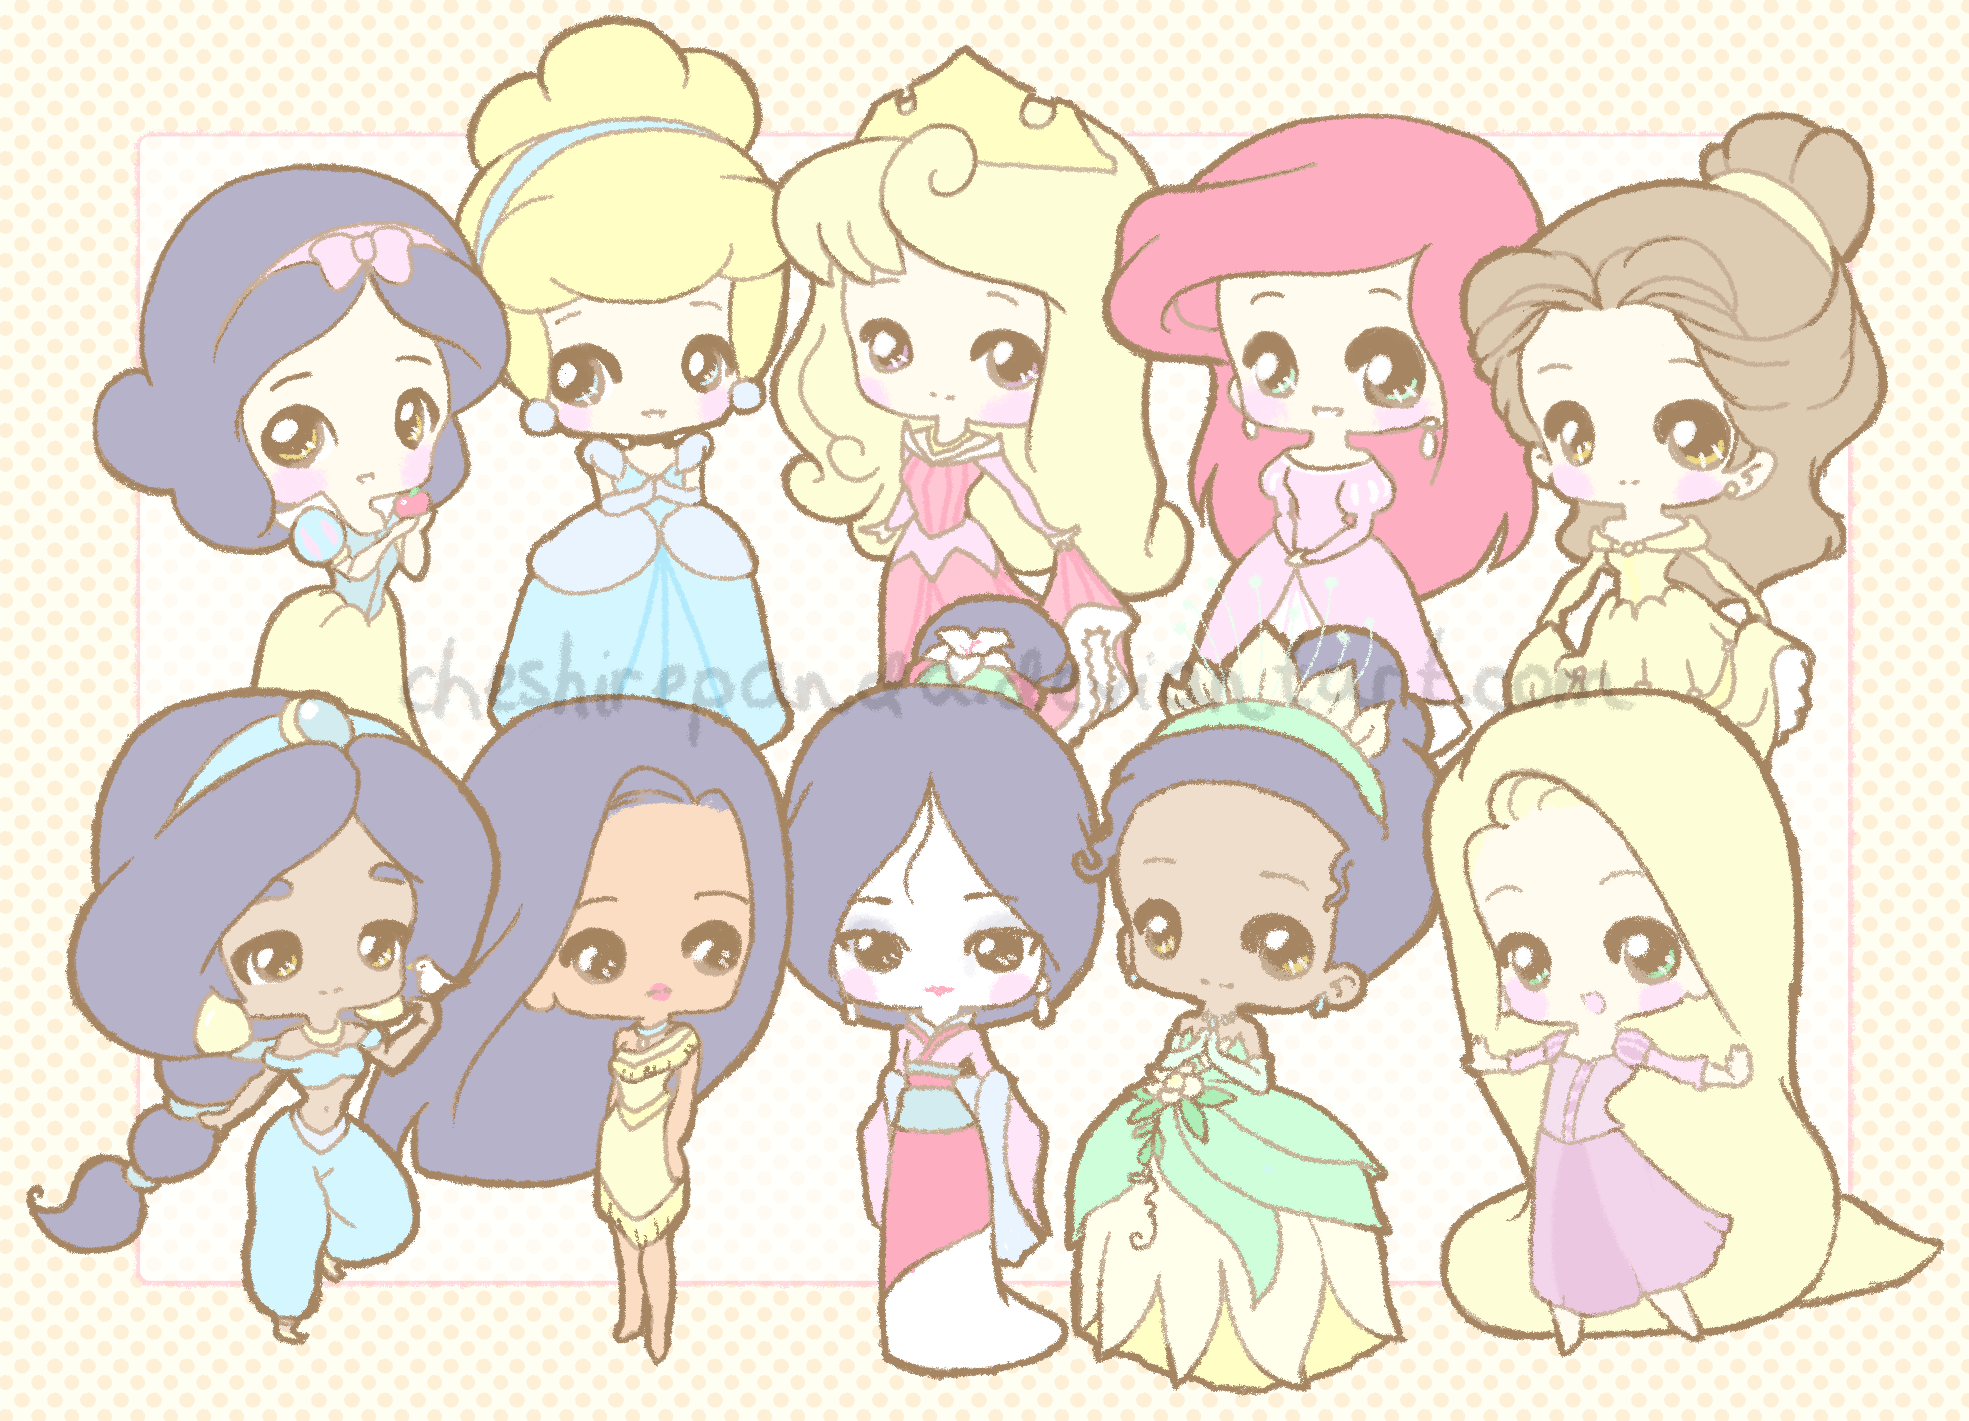 awww disney chibi princesses | anime fan art | Pinterest ...